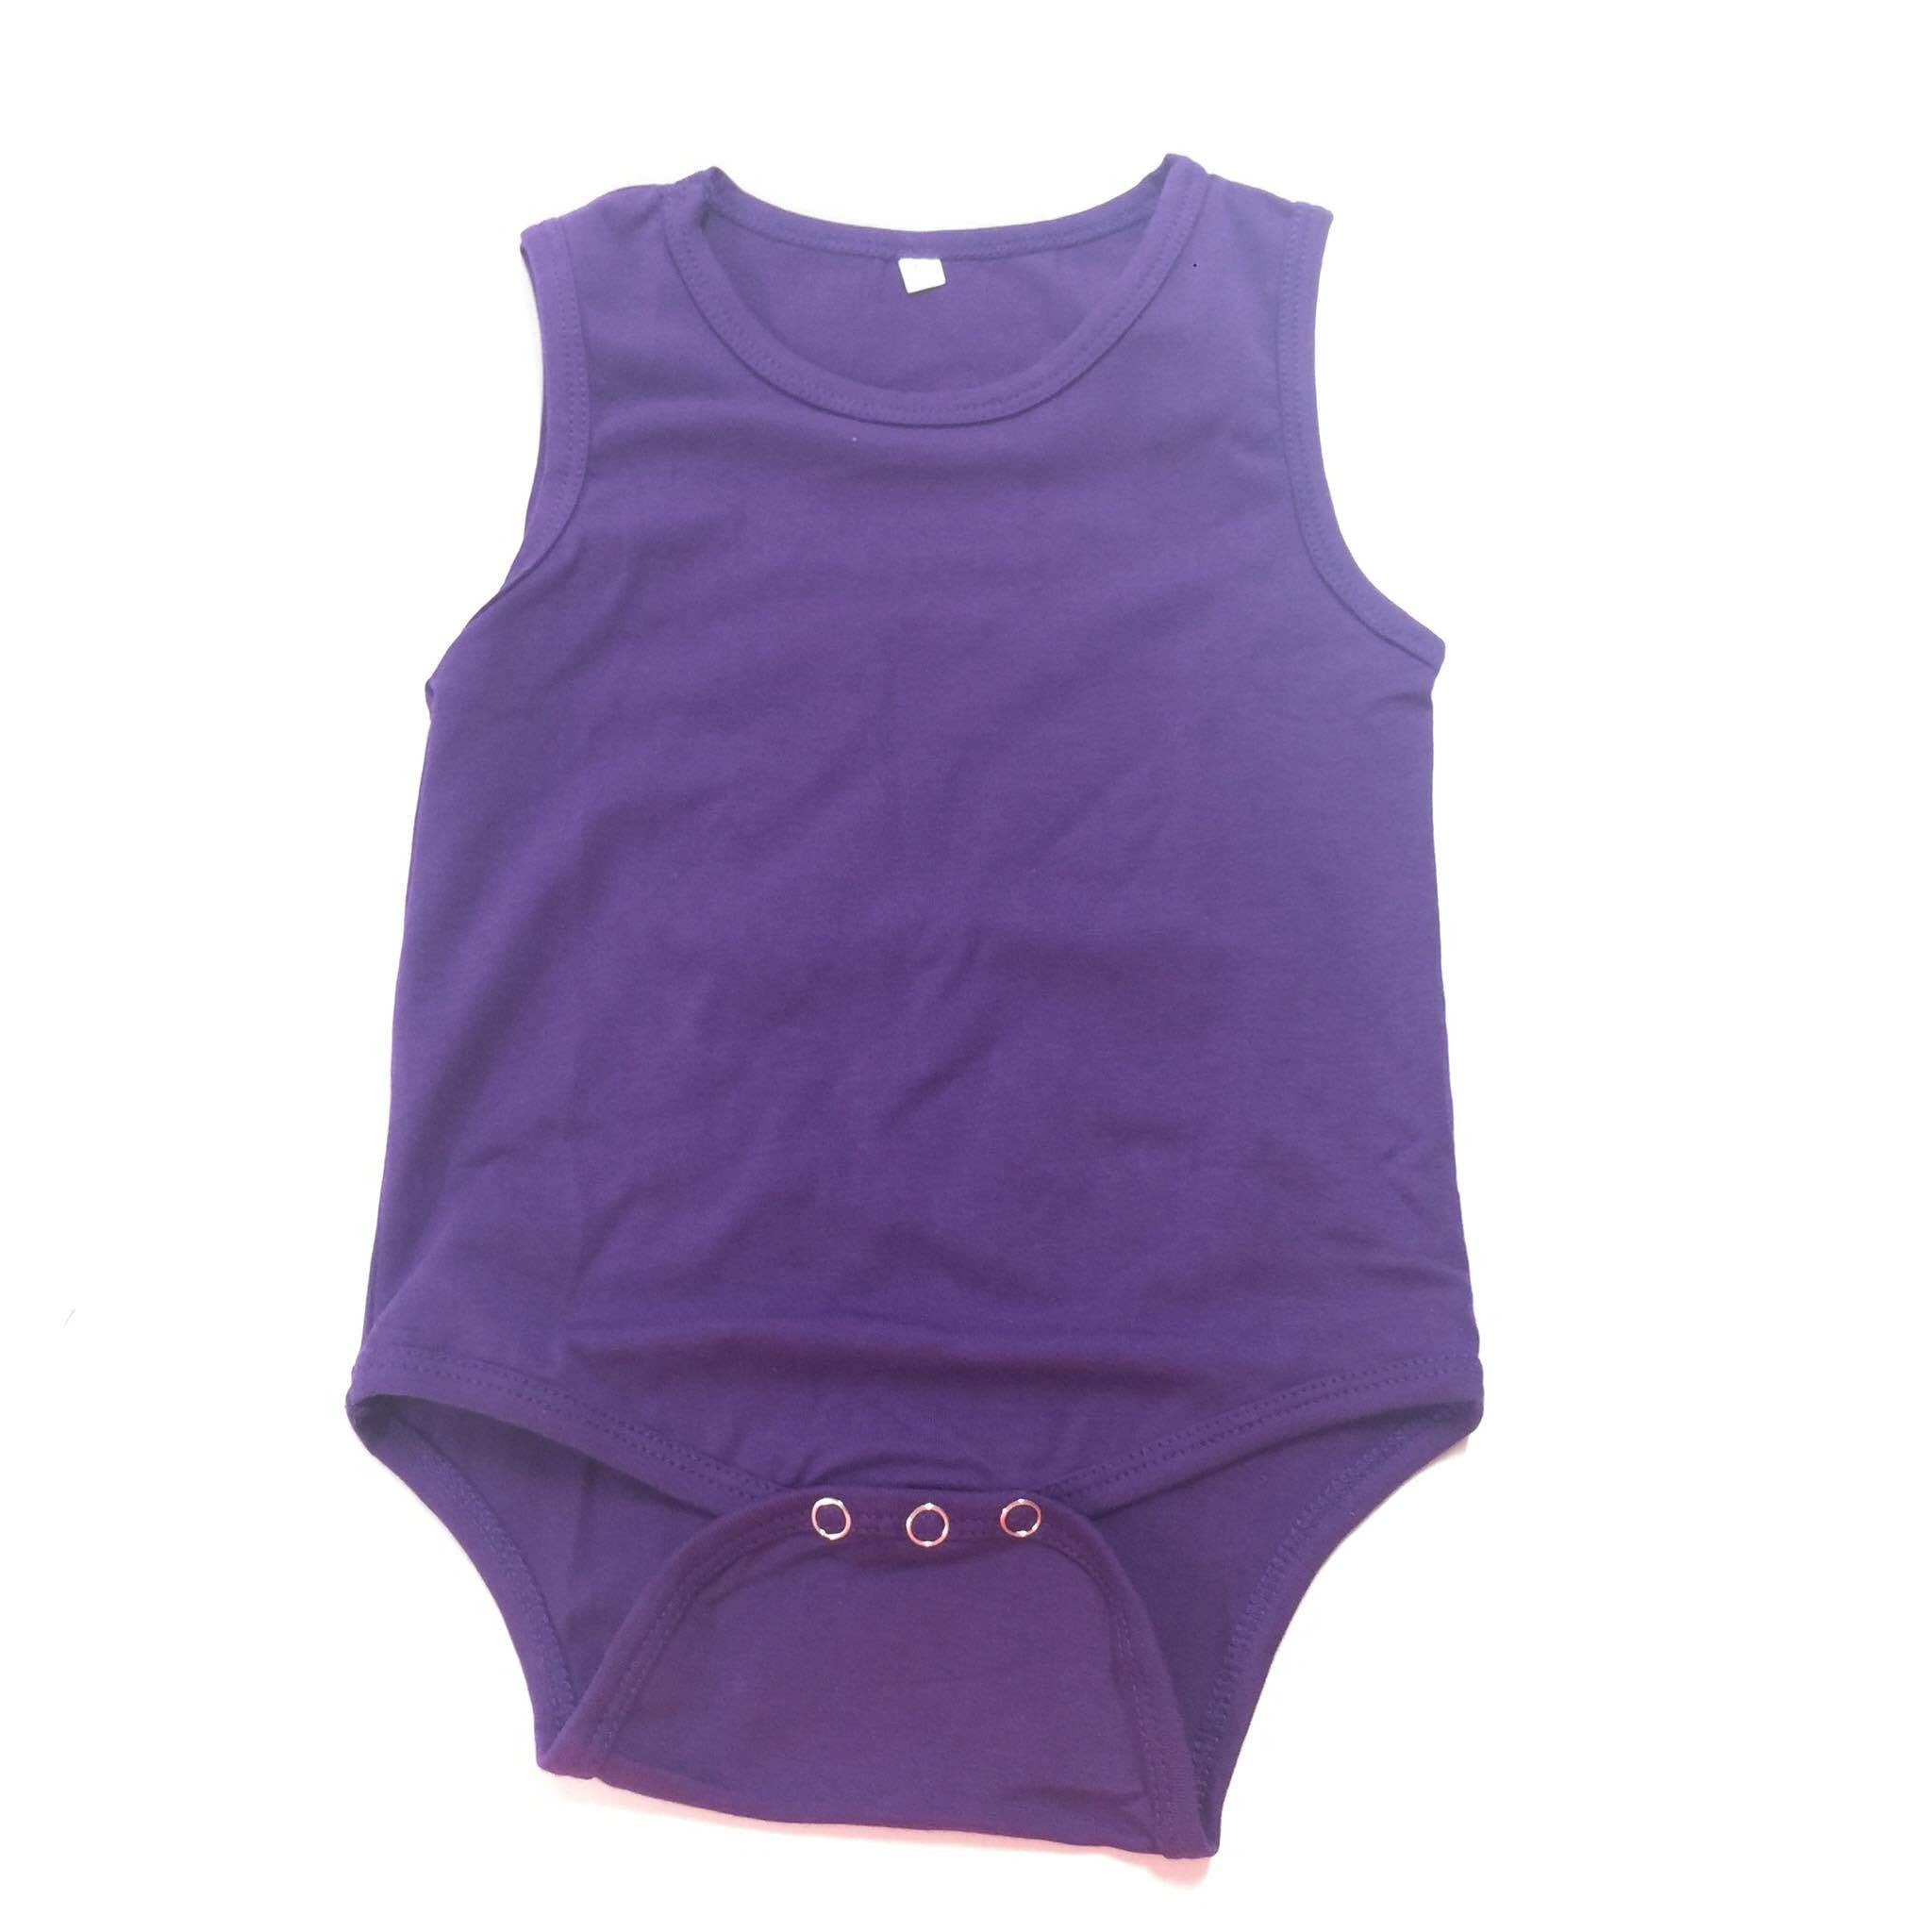 Cotton Spandex Bodysuits - Dark Colours